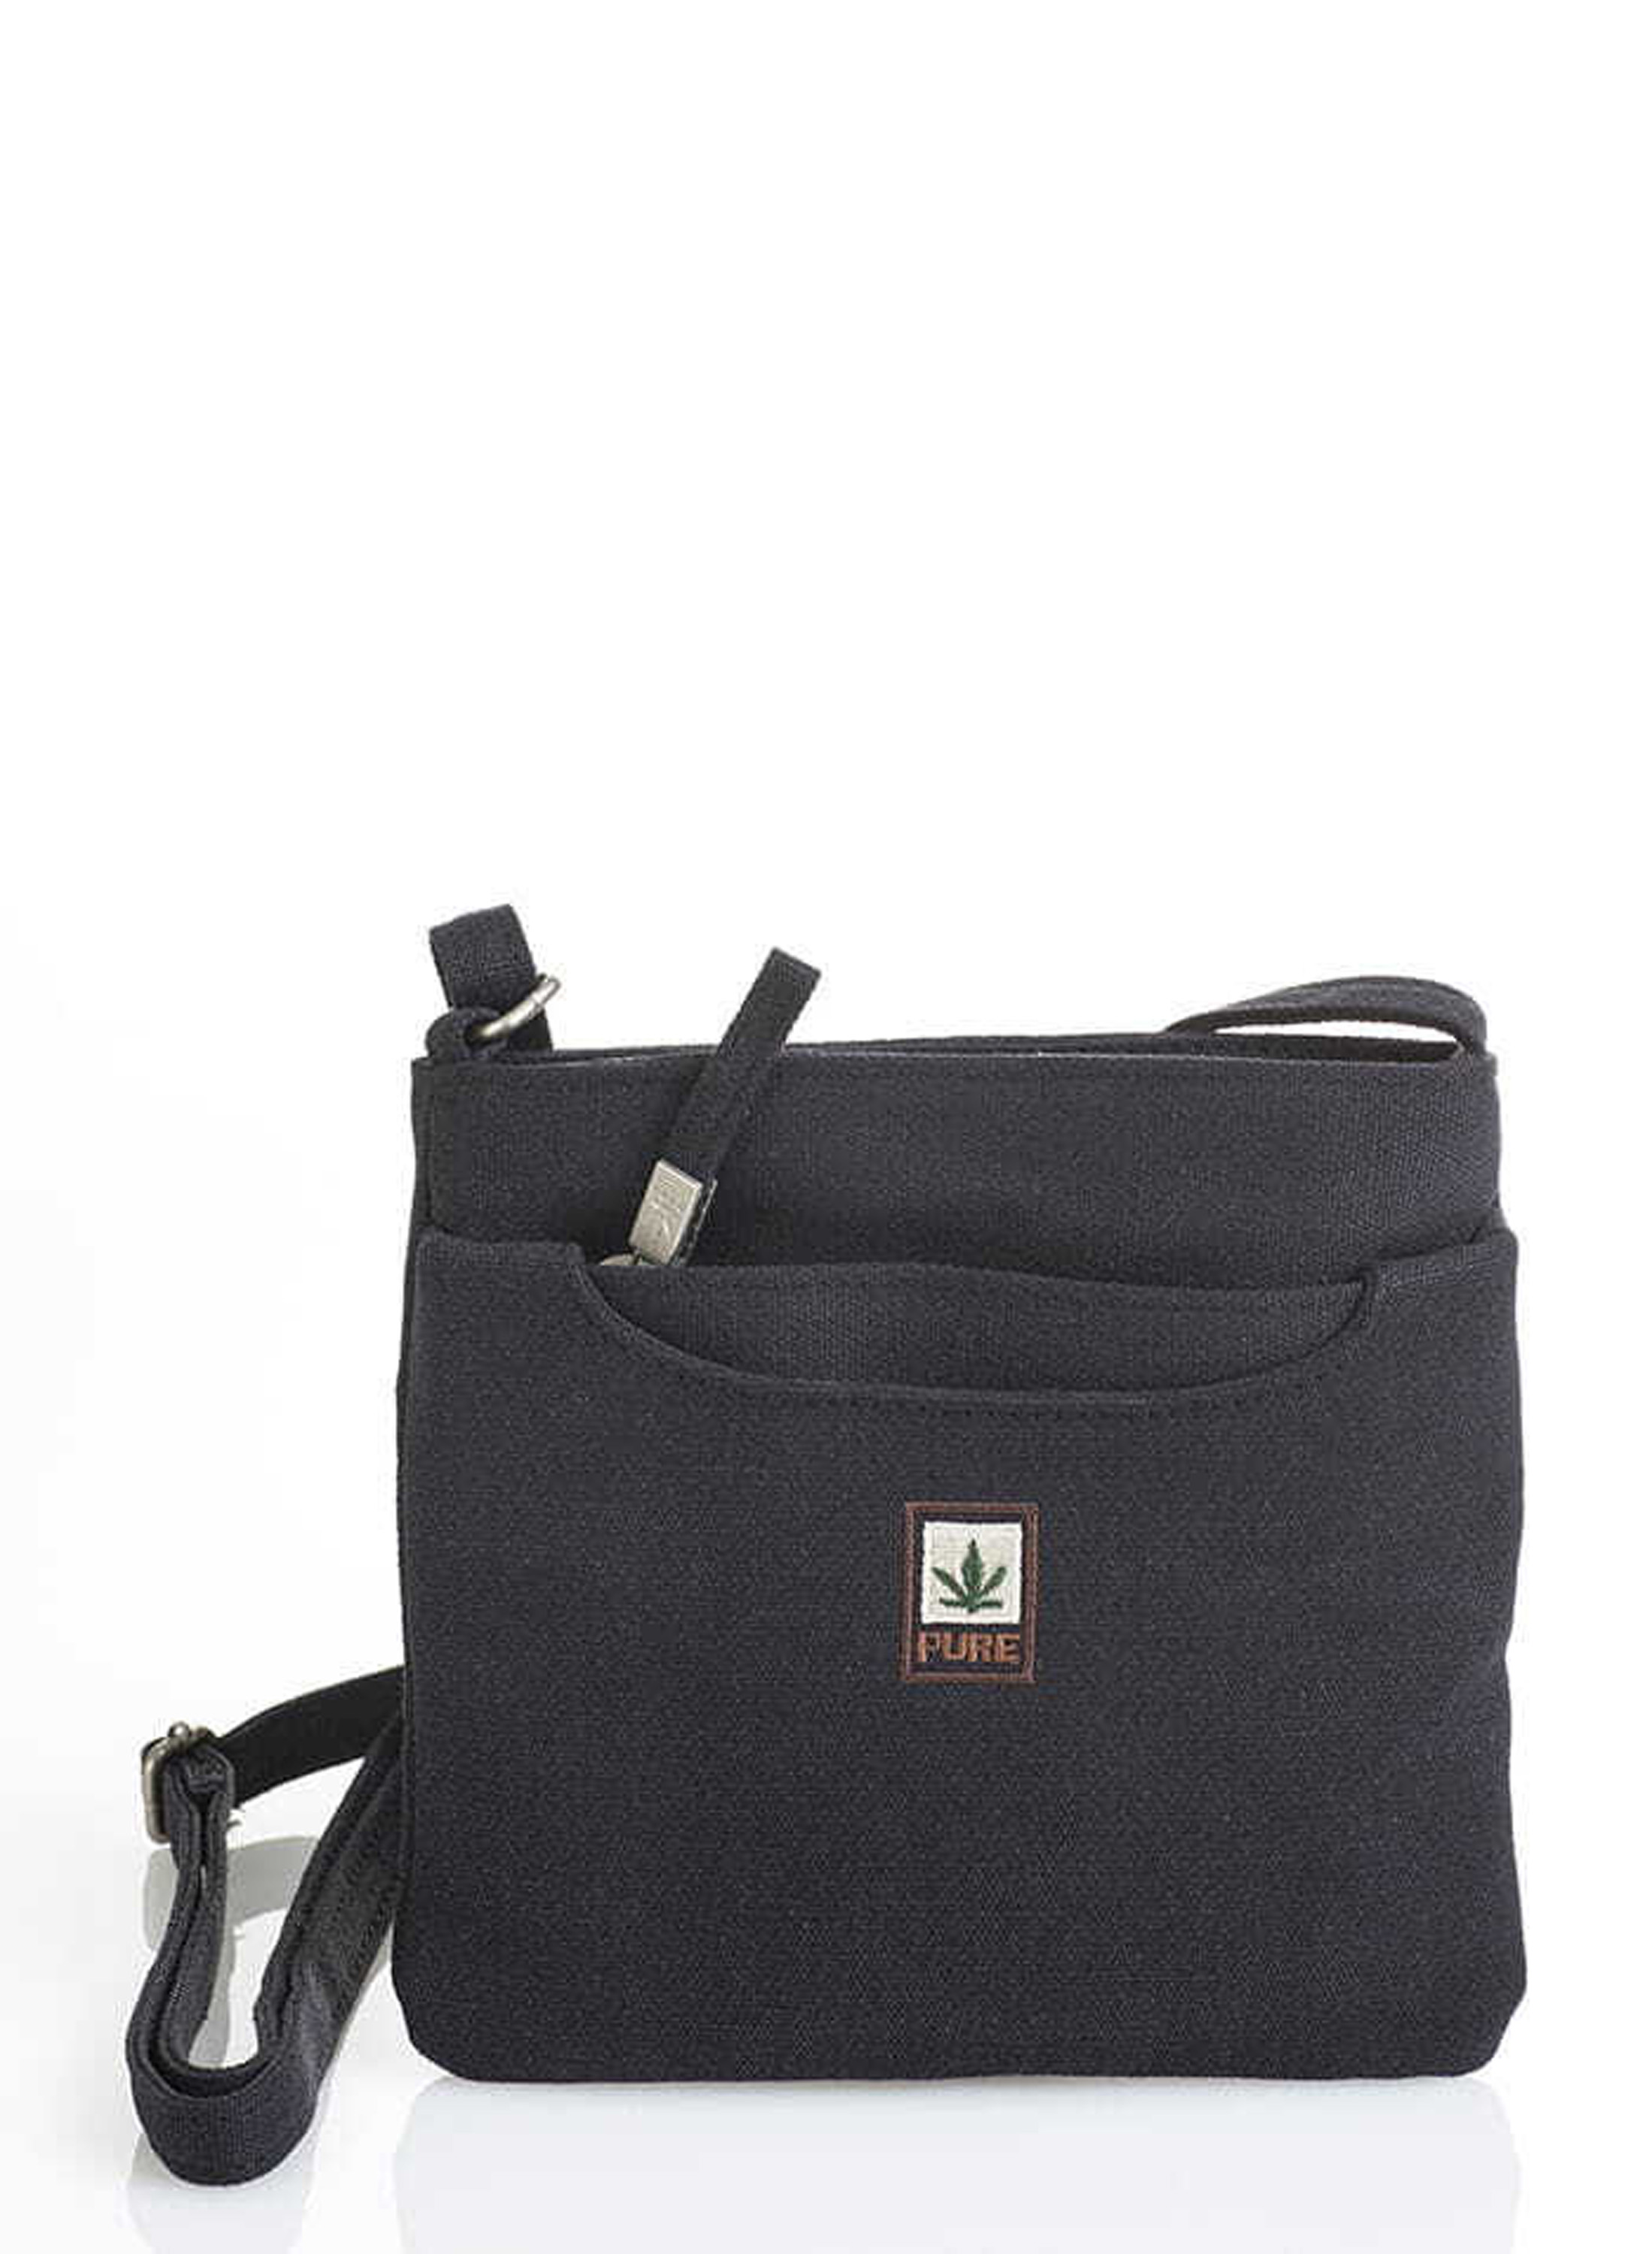 XS Shoulder Bag HV-0007